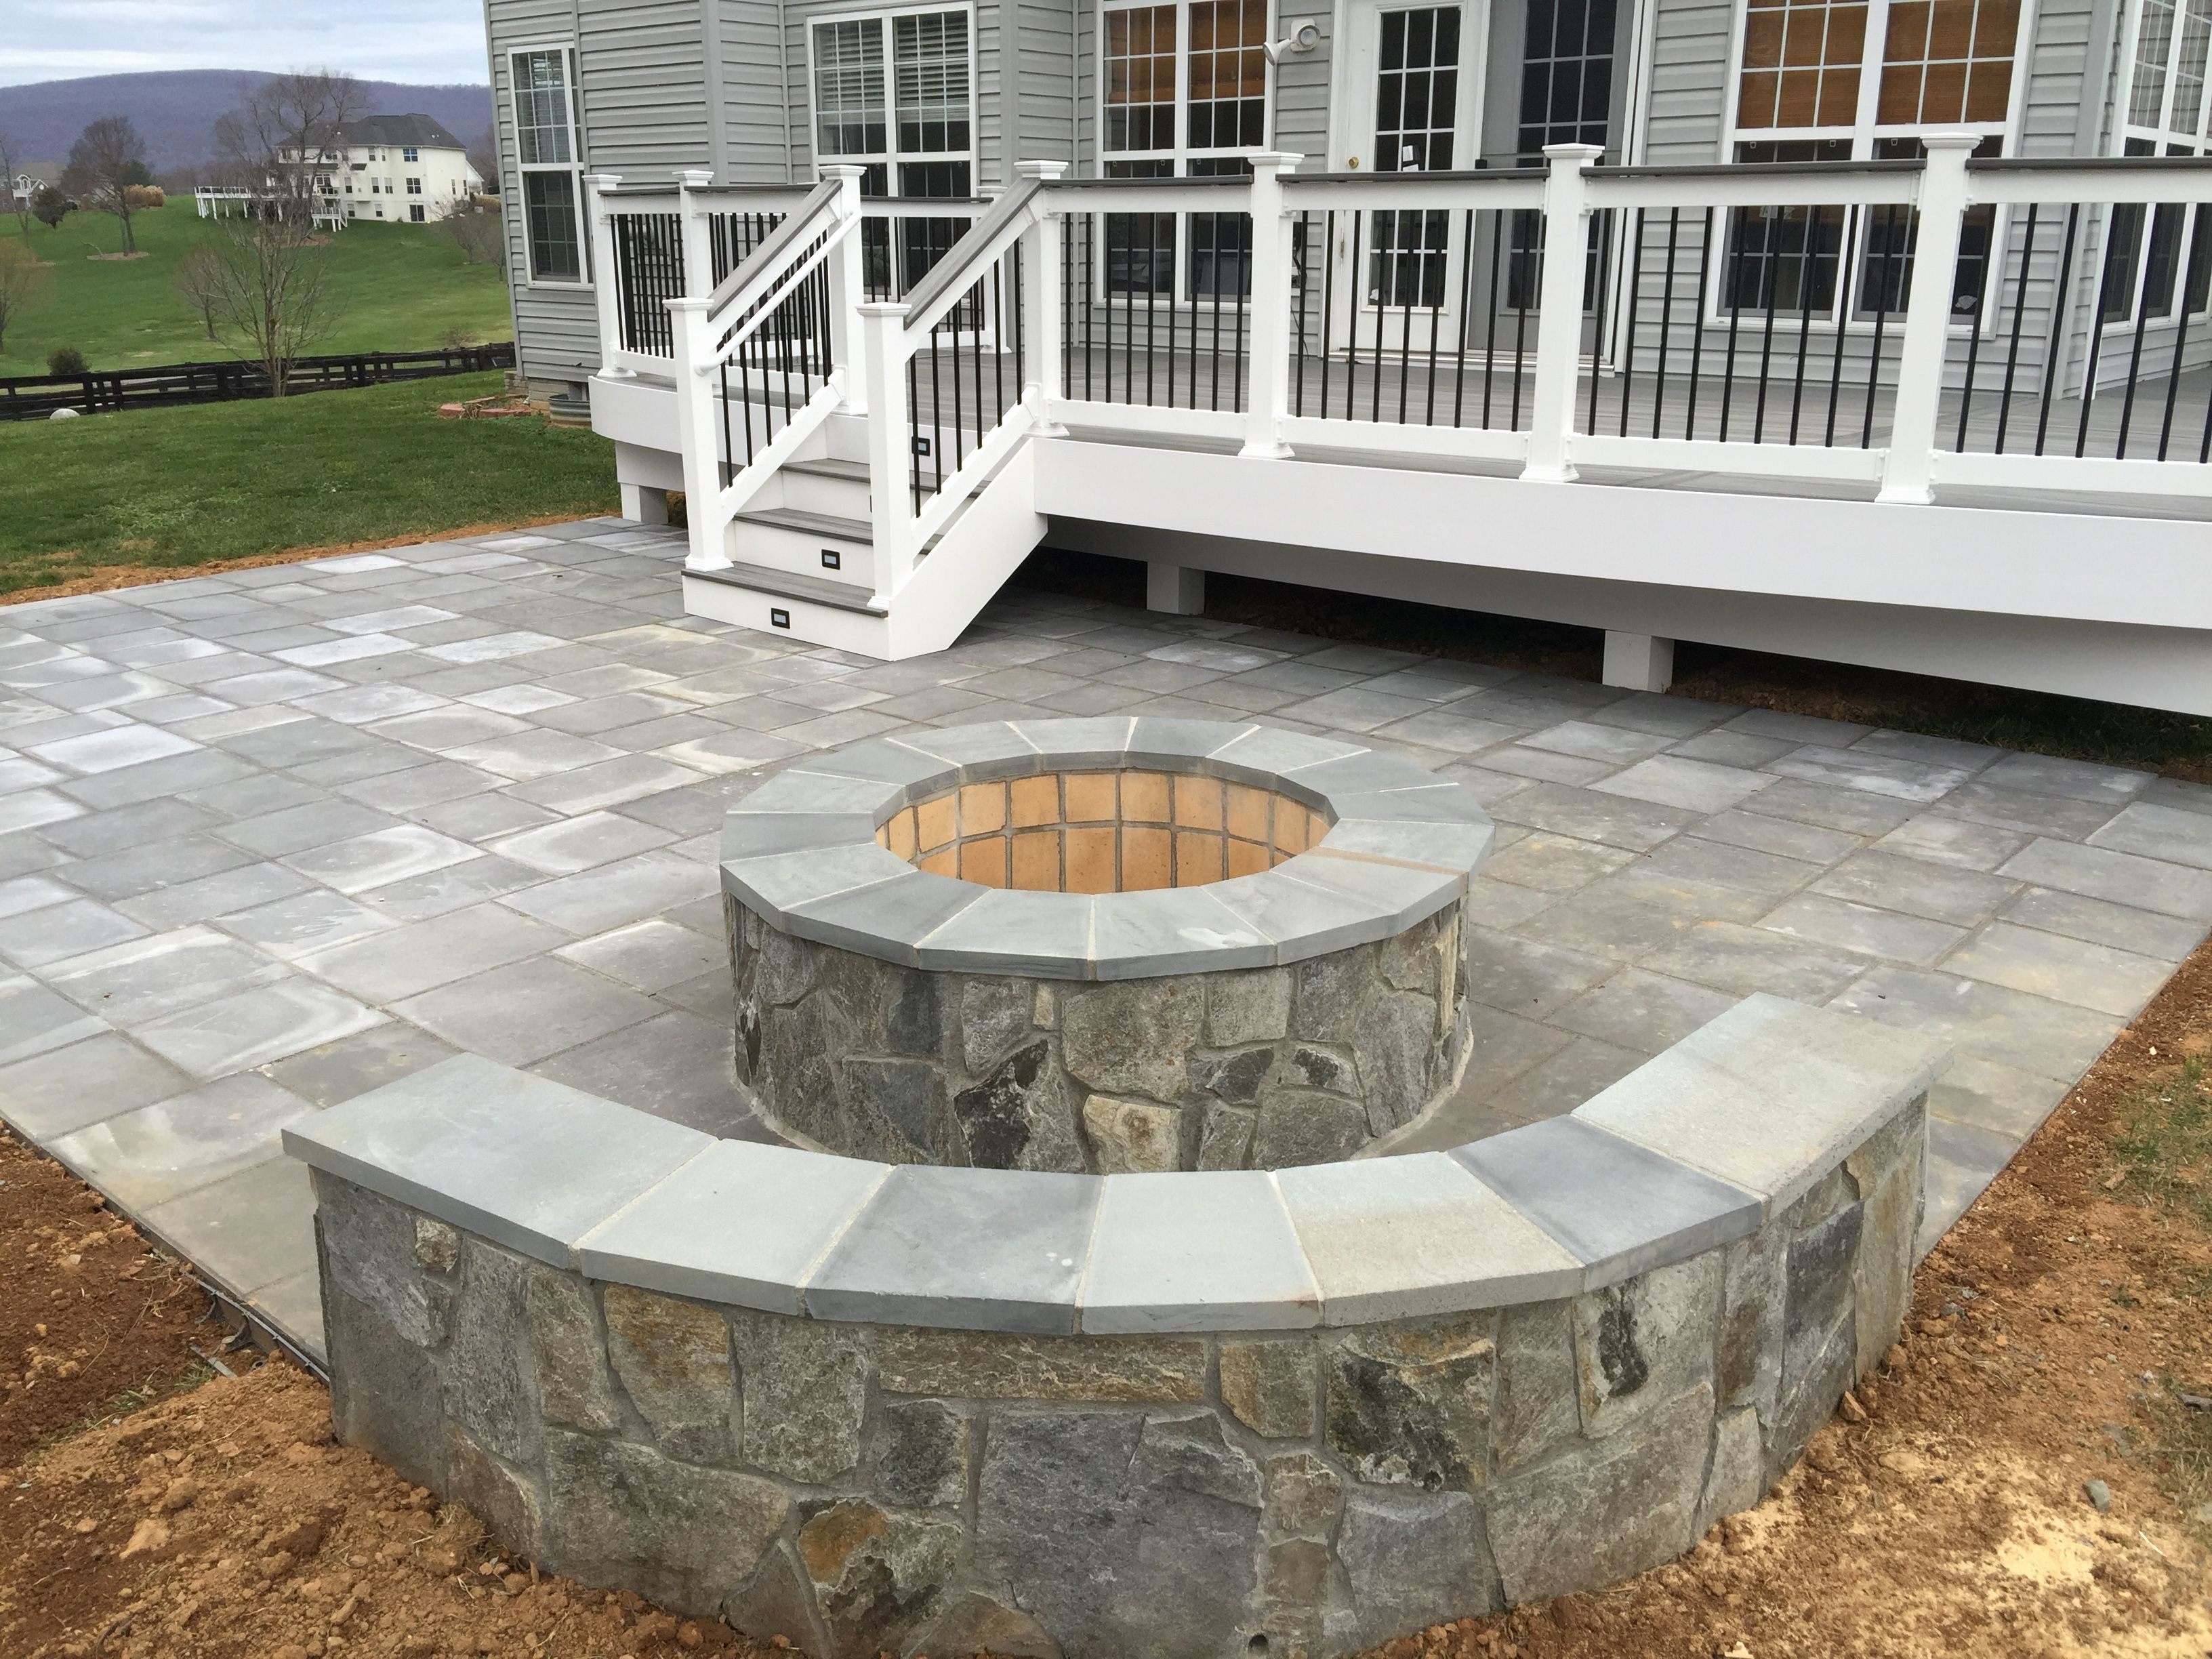 Paver Patio Installers Near Me Elegant A Beautiful Paver Patio With Stone Seating Walls And A Fire Pit Patio Deck Designs Patio Stones Backyard Patio Designs